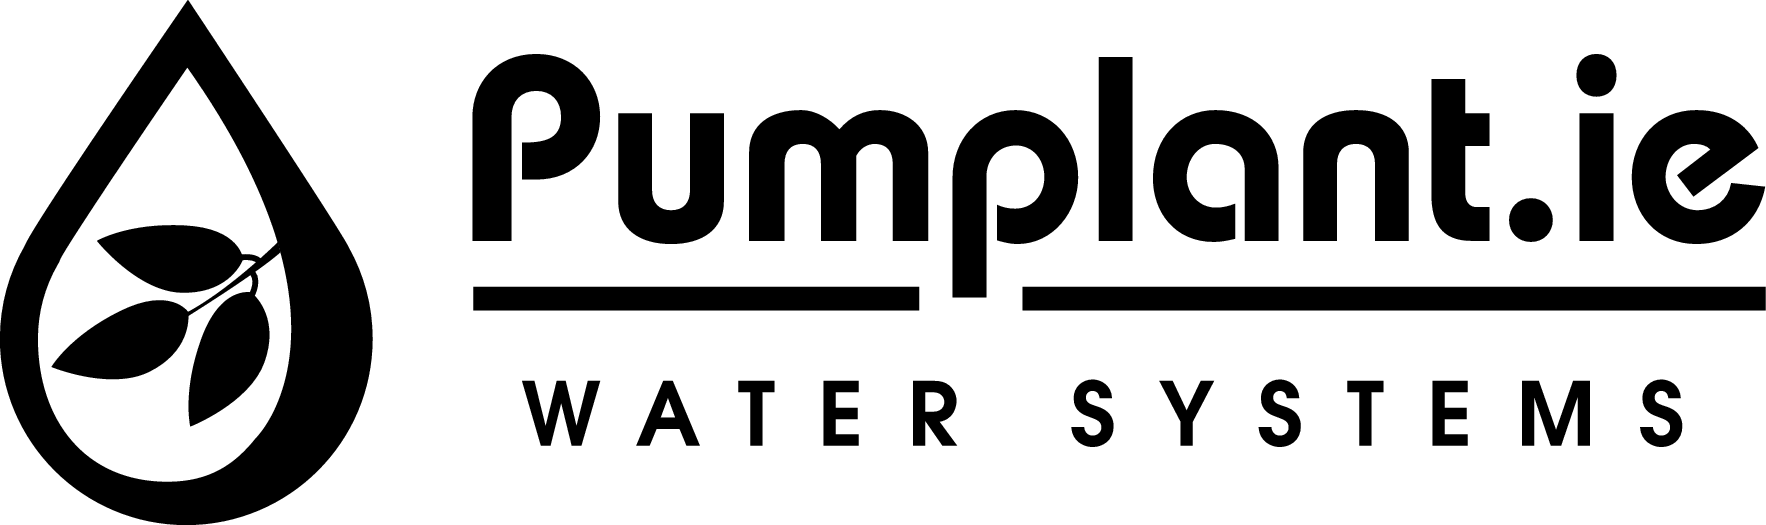 Pumplant Logo Mobile